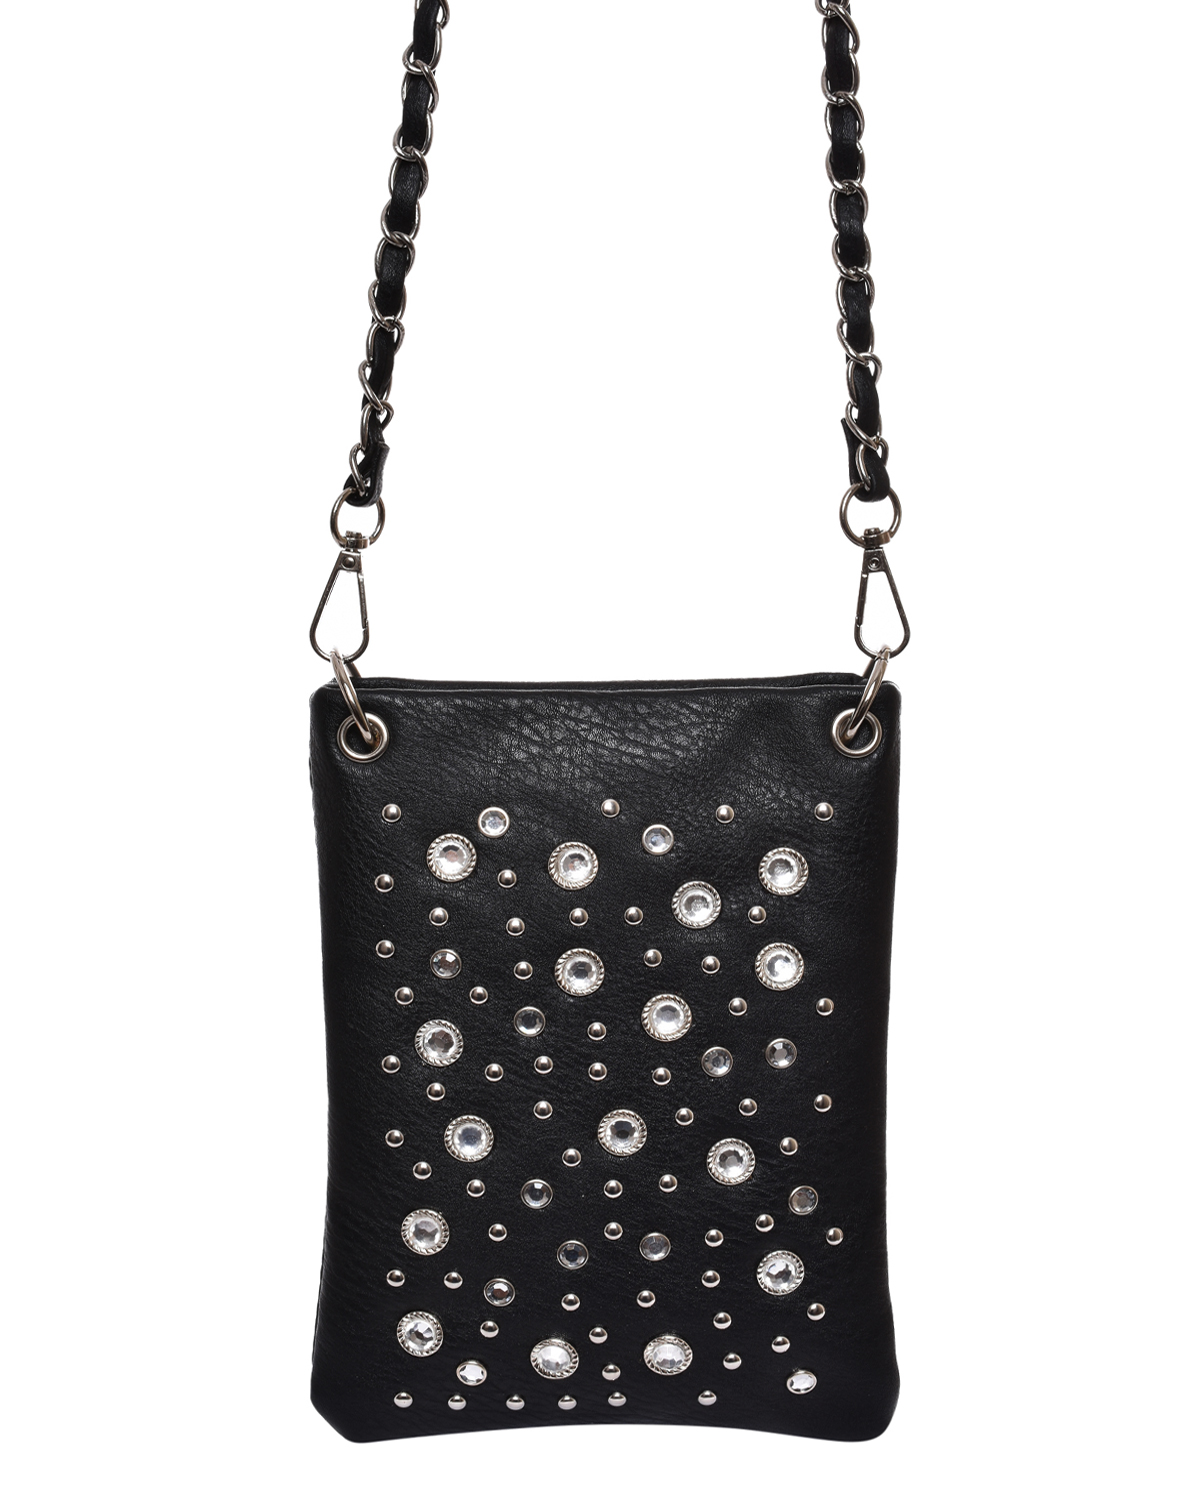 203007(BK)-wholesale-mini-messenger-bag-rhinestones-studs-silver-faux-leatherette-western-crossbody-chain-strap(0).jpg